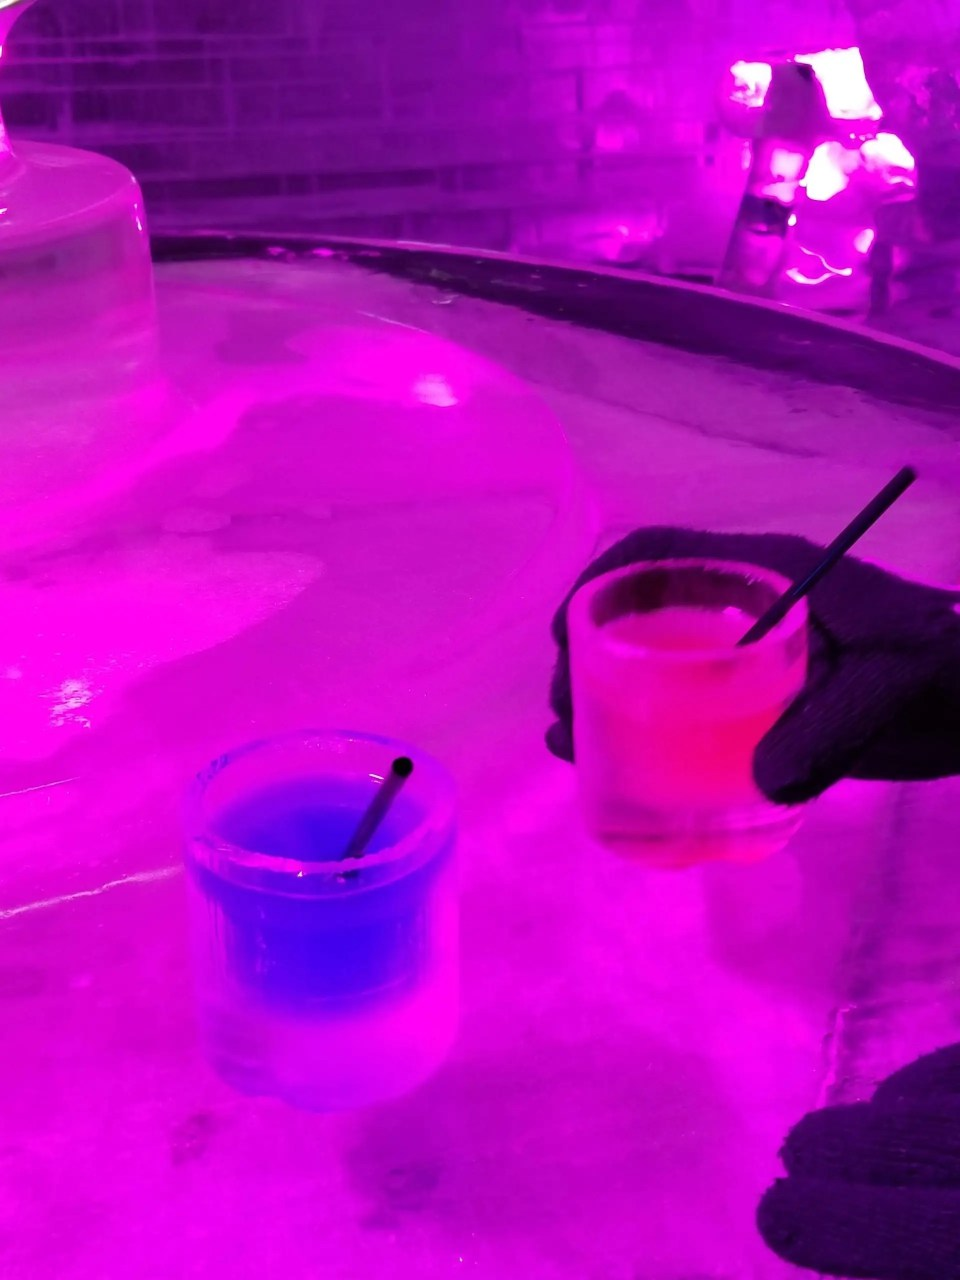 displays cocktails served in glasses made from ice at Orlando's Ice Bar